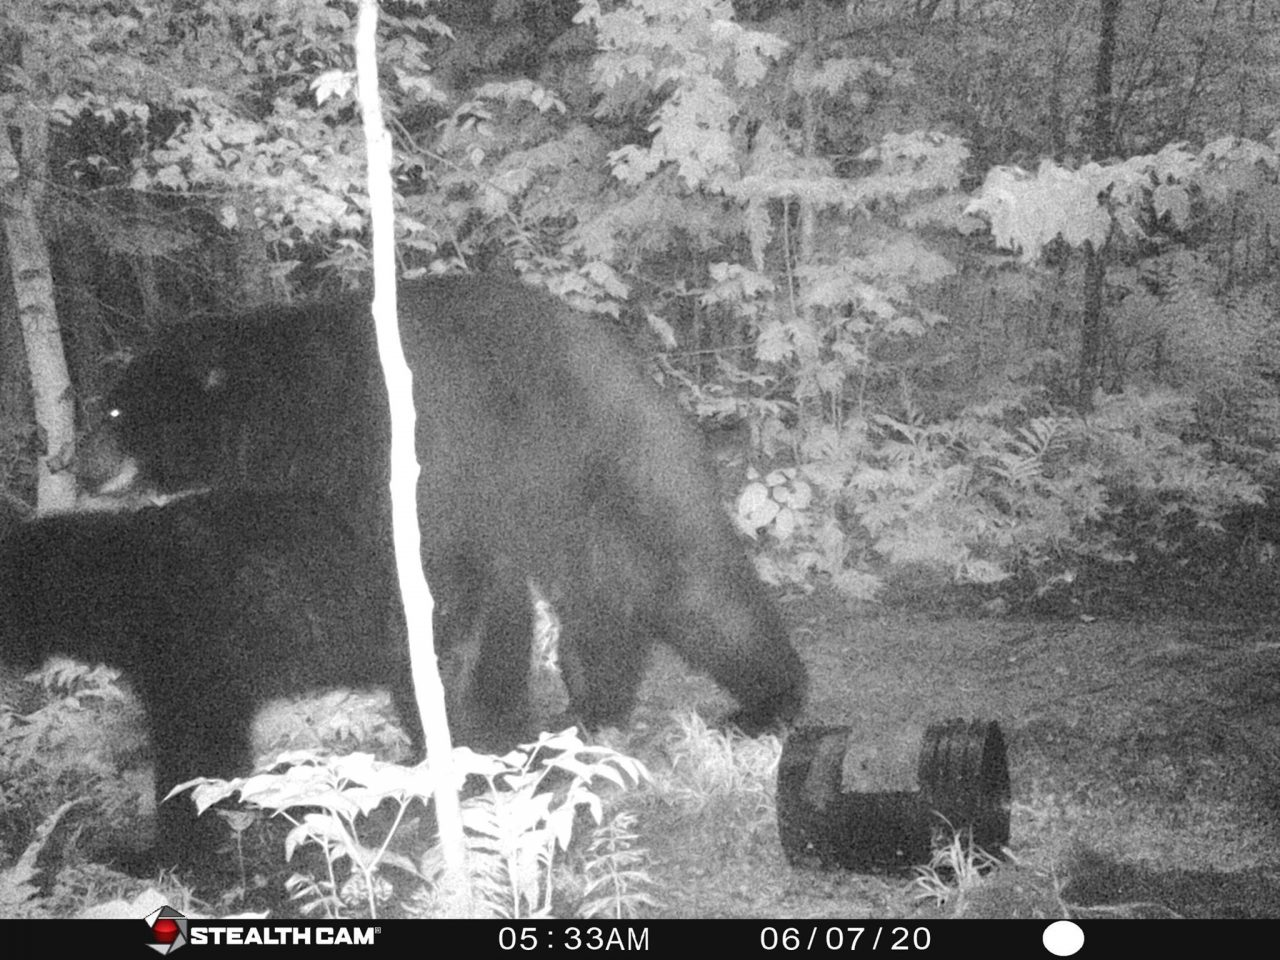 Black Bears Mating on Stealth Cam Trail Camera